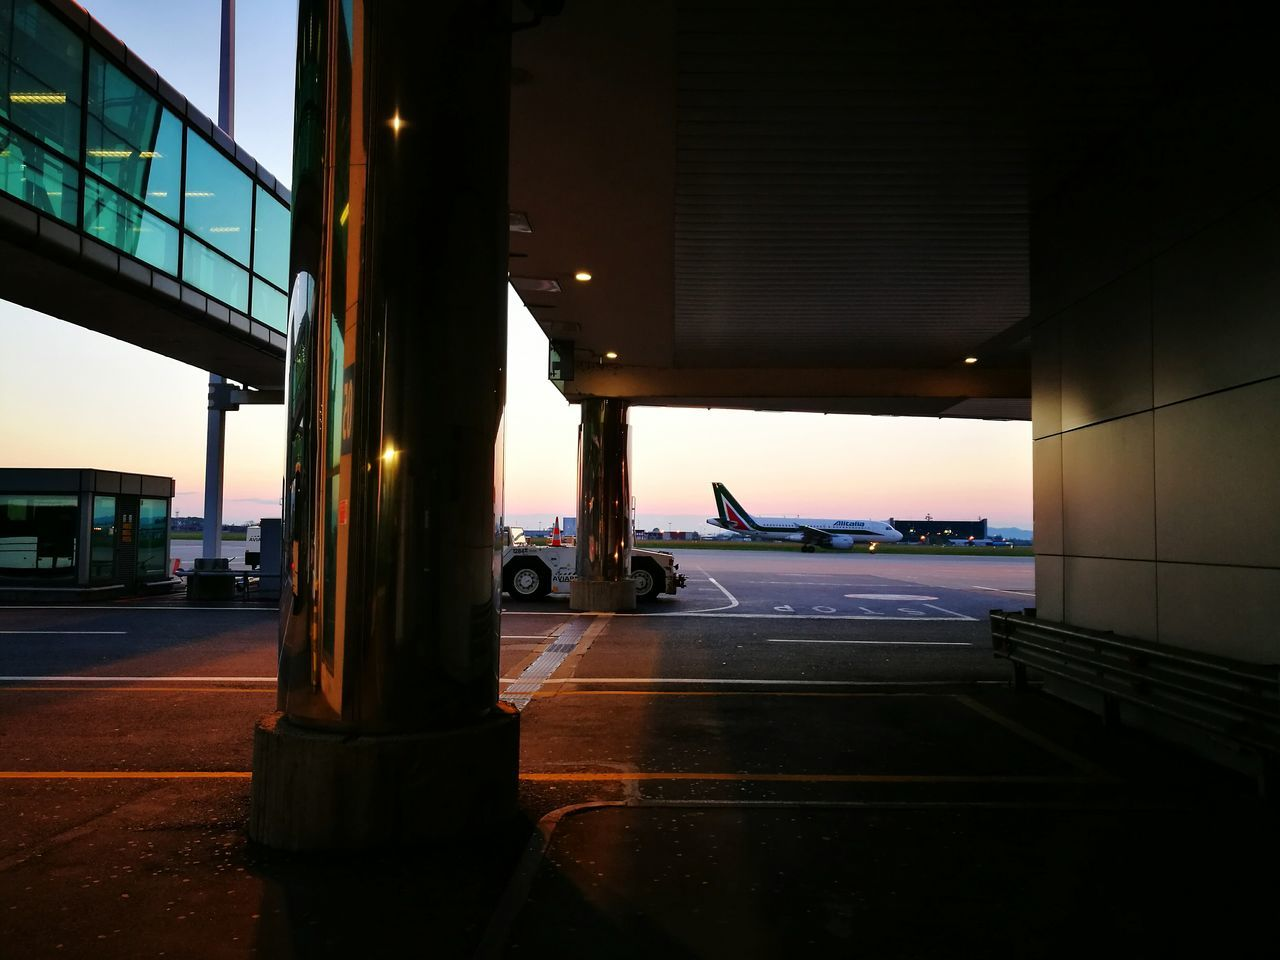 Morning Light Morning Sky Airplane Shot Airportphotography Airport Architecture Lovemyjob